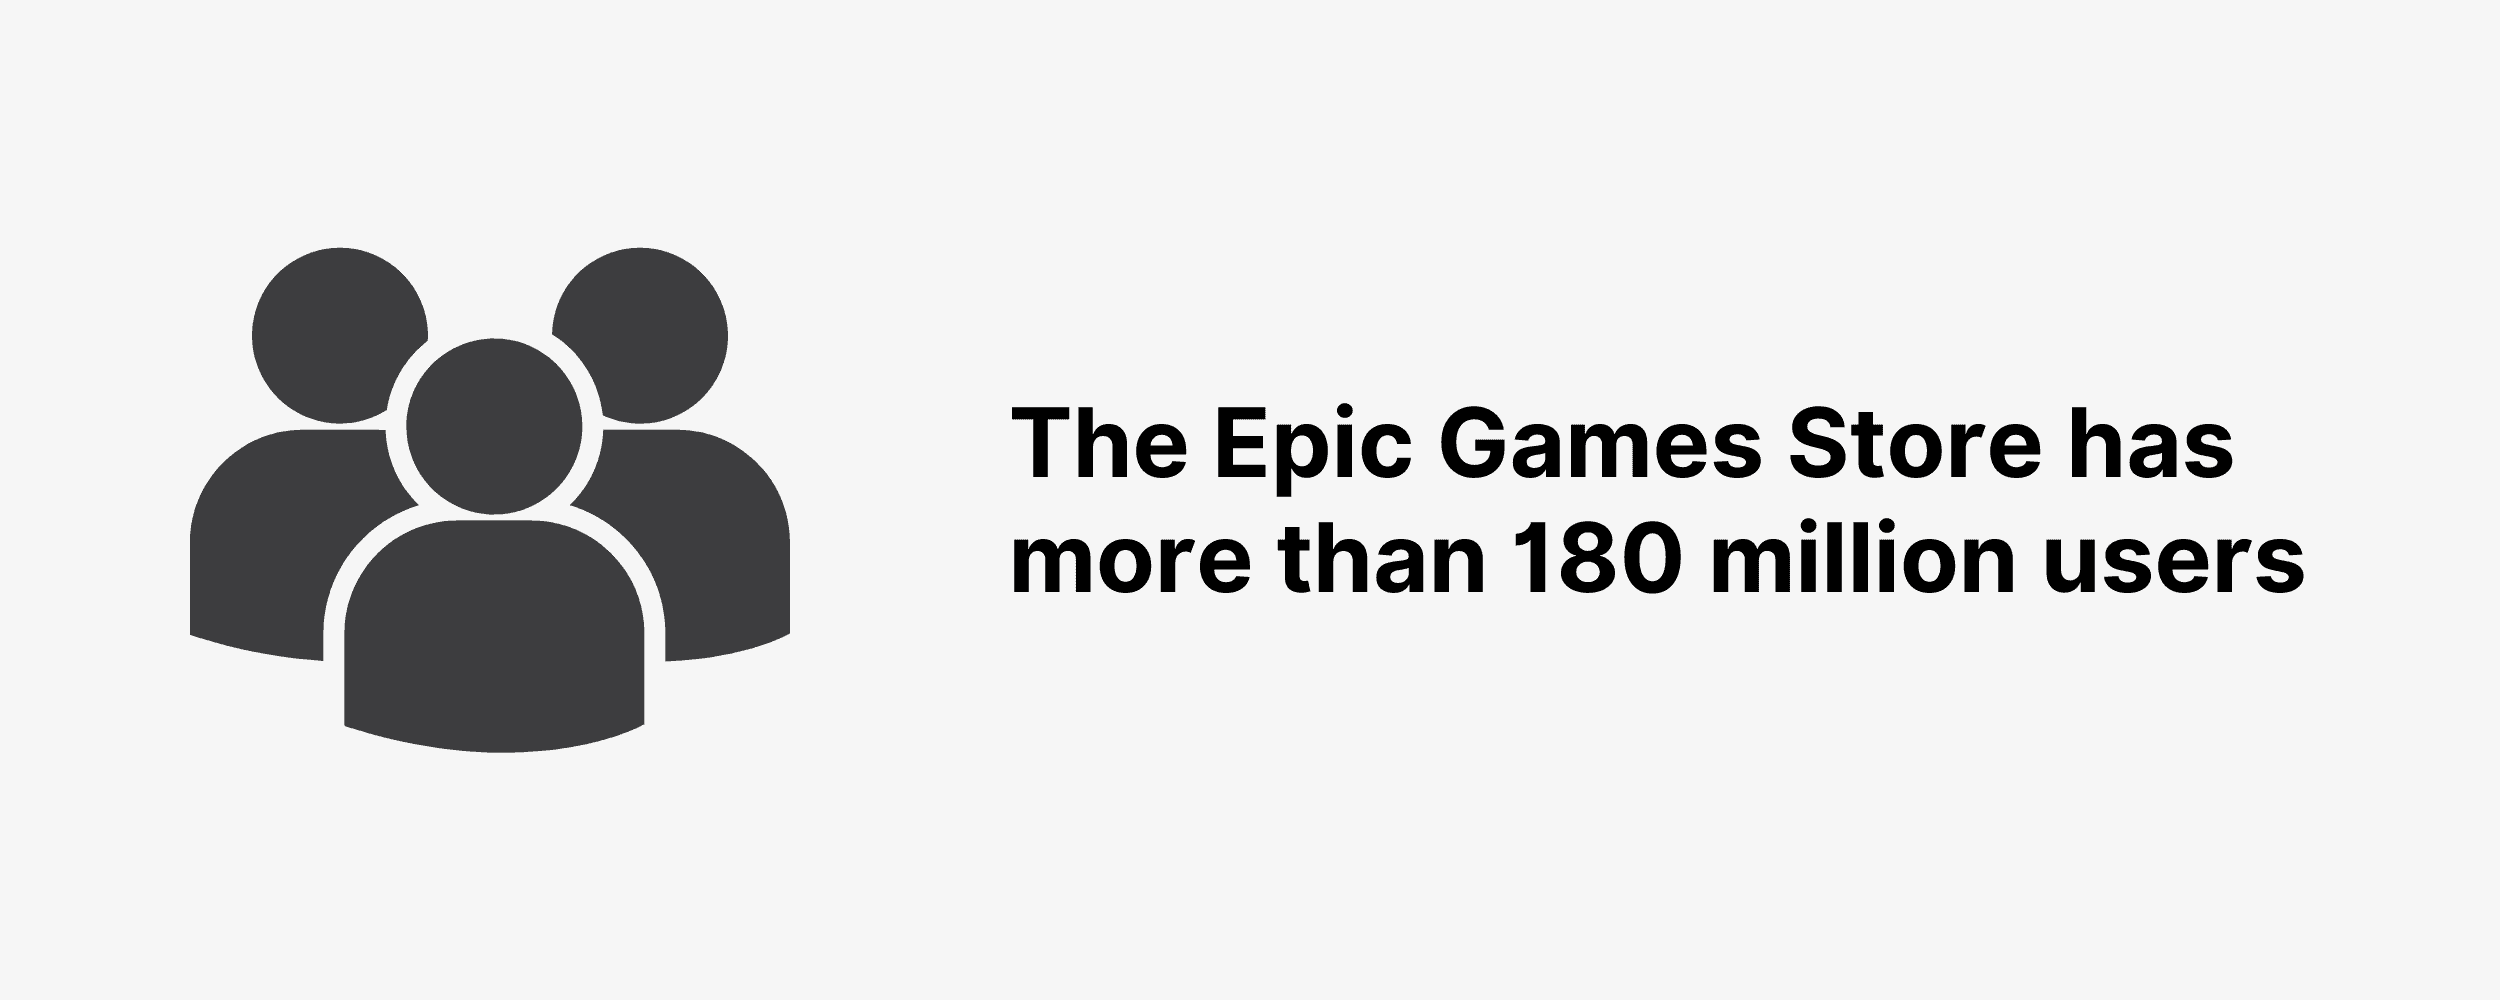 The Epic Games Store has more than 180 million users